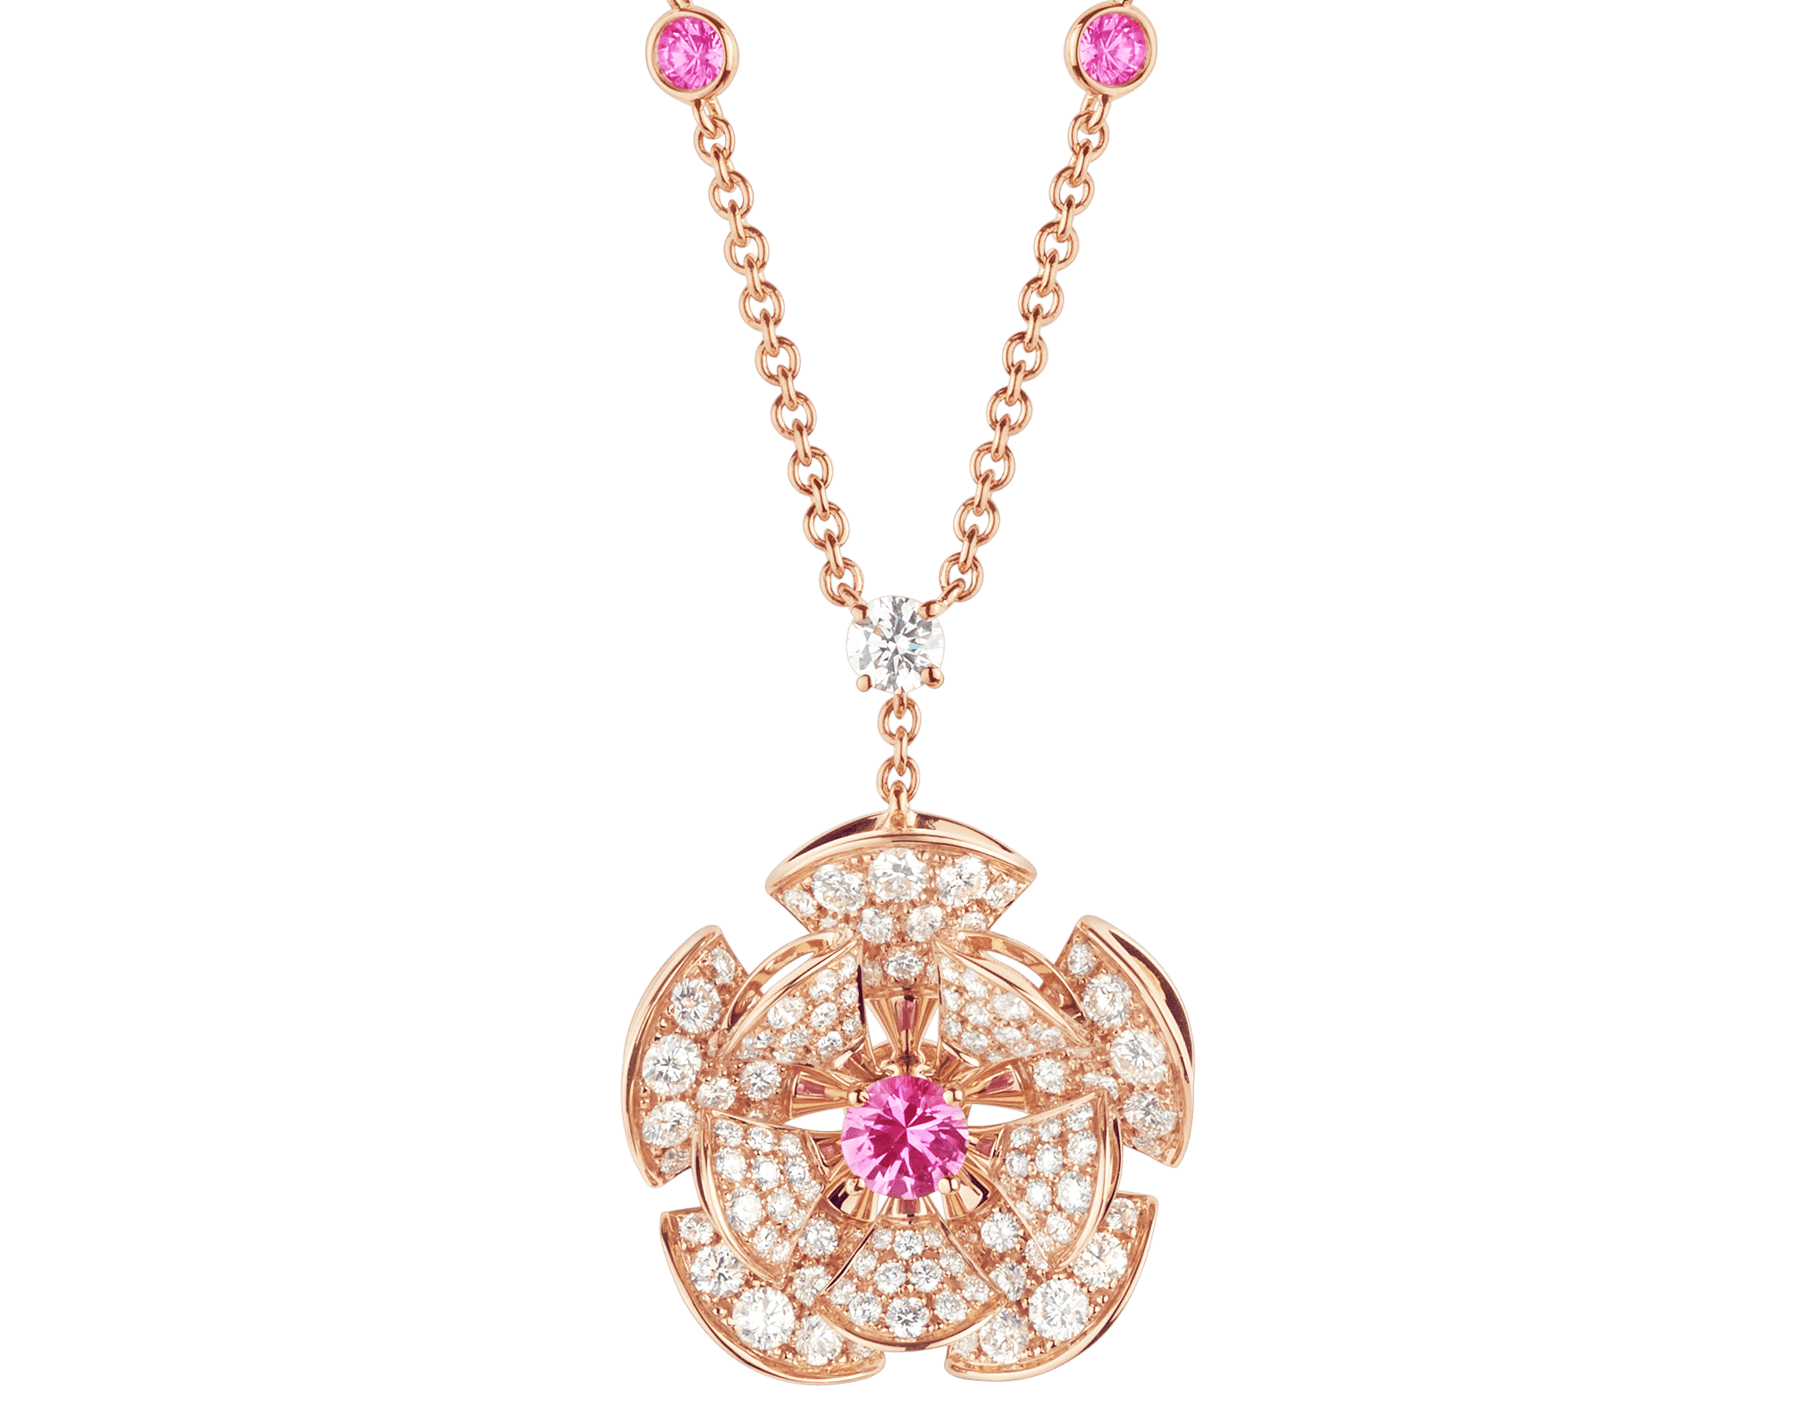 DIVAS' DREAM necklace in 18 kt rose gold with chain set with pink sapphires and a diamond, and with a pendant set with a central pink sapphire and pavé diamonds. 352628 image 1